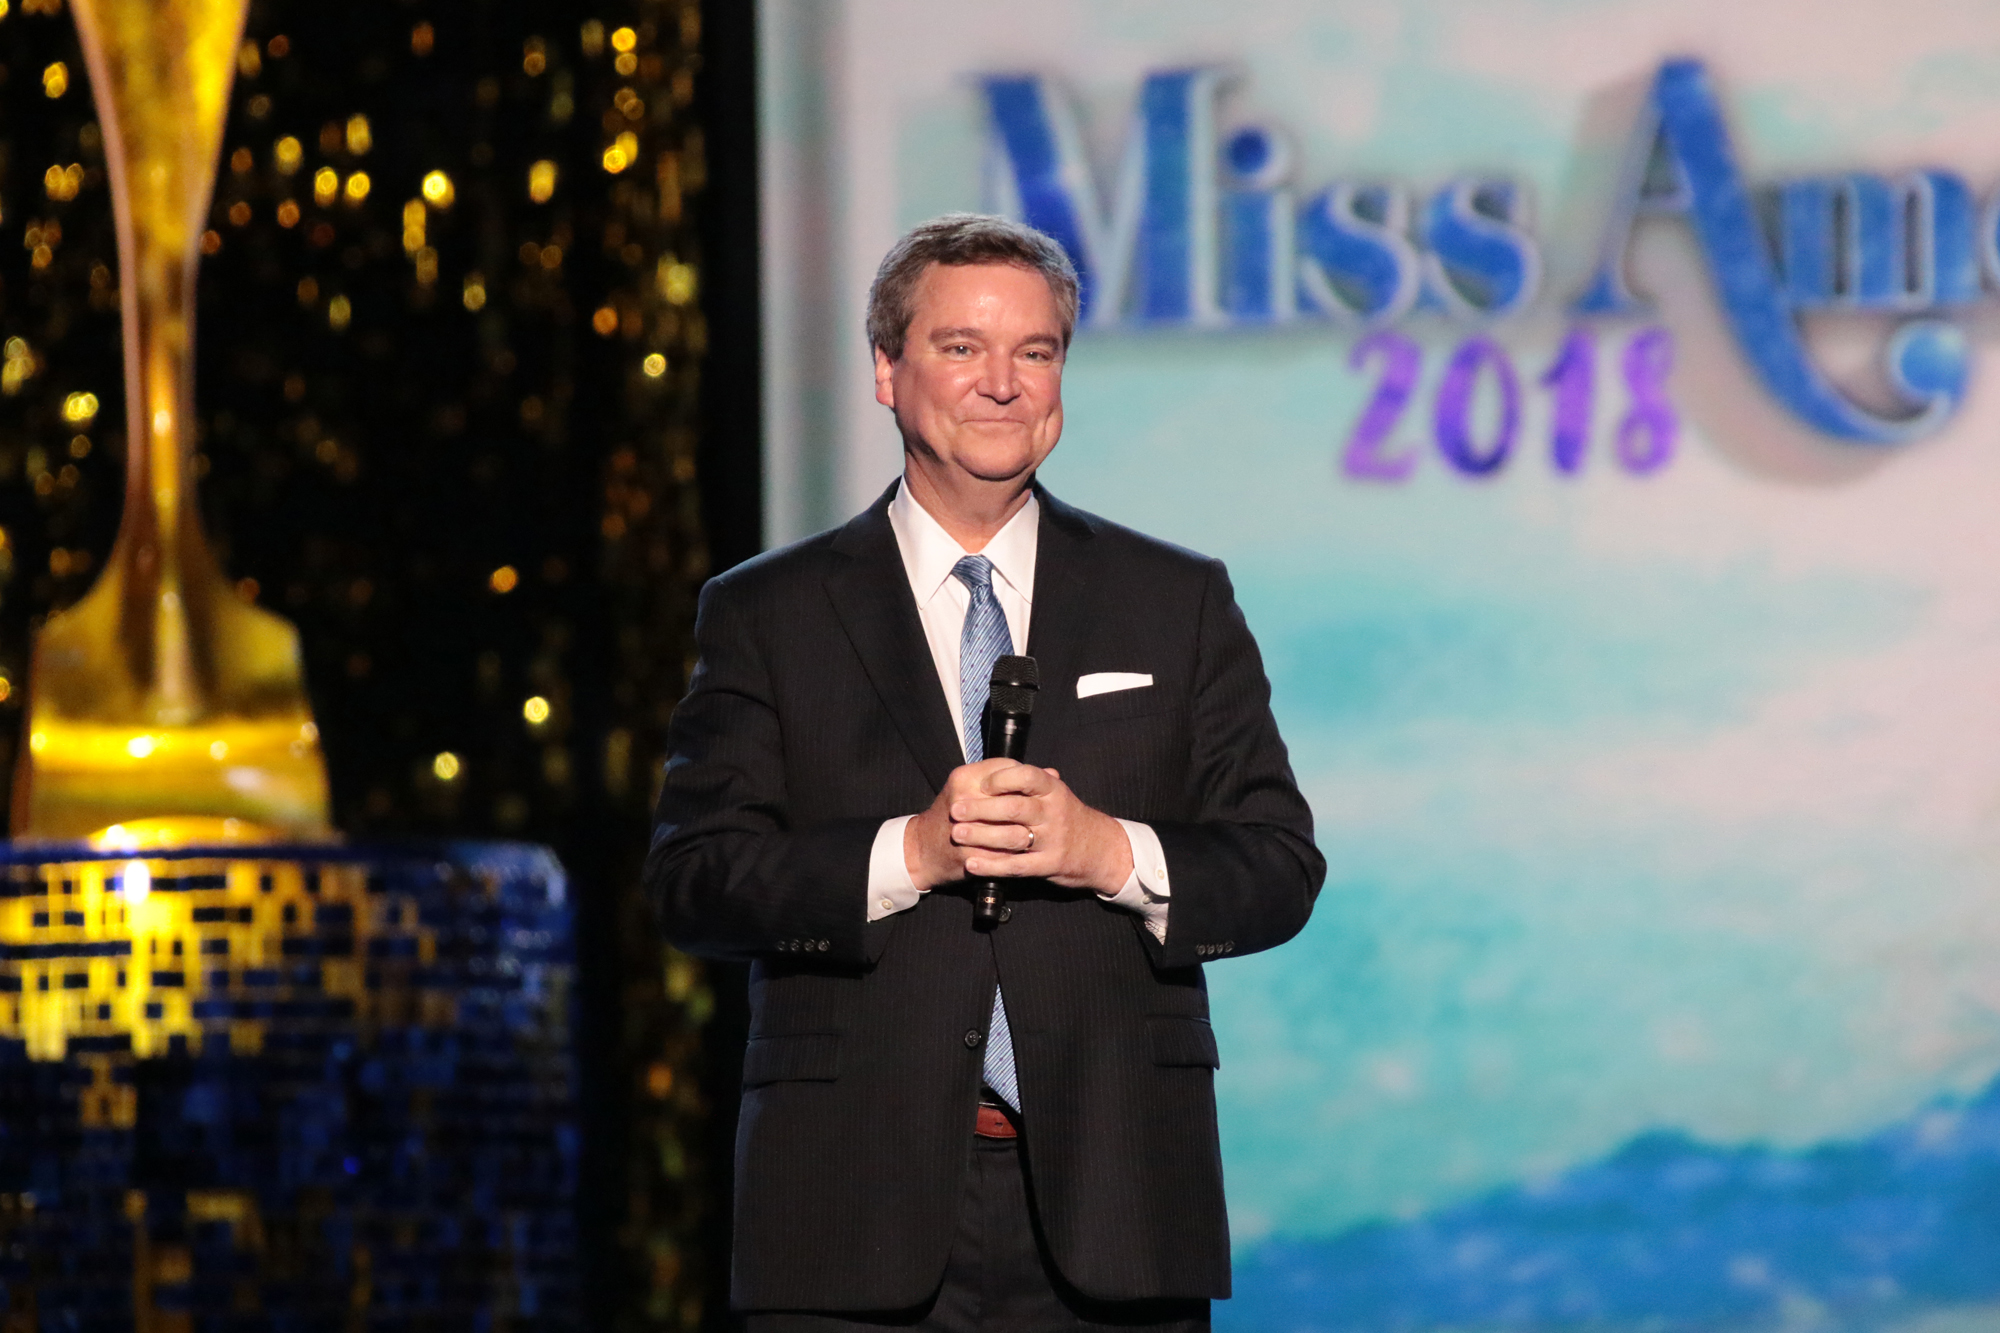 Miss America 2018 - Third Night of Preliminary Competition